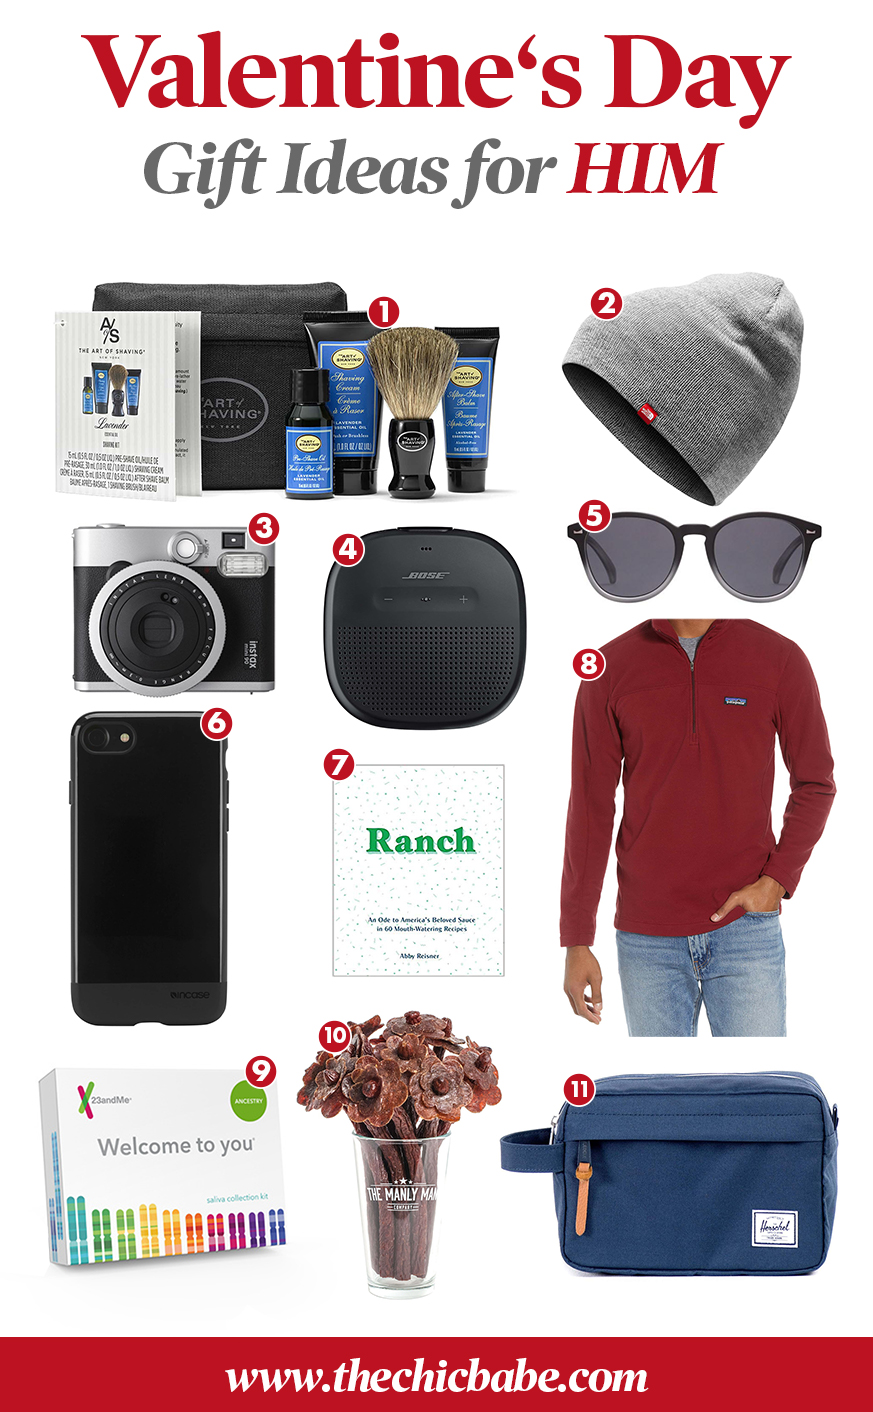 Valentine's Day Gift Guide For Him (1).jpg